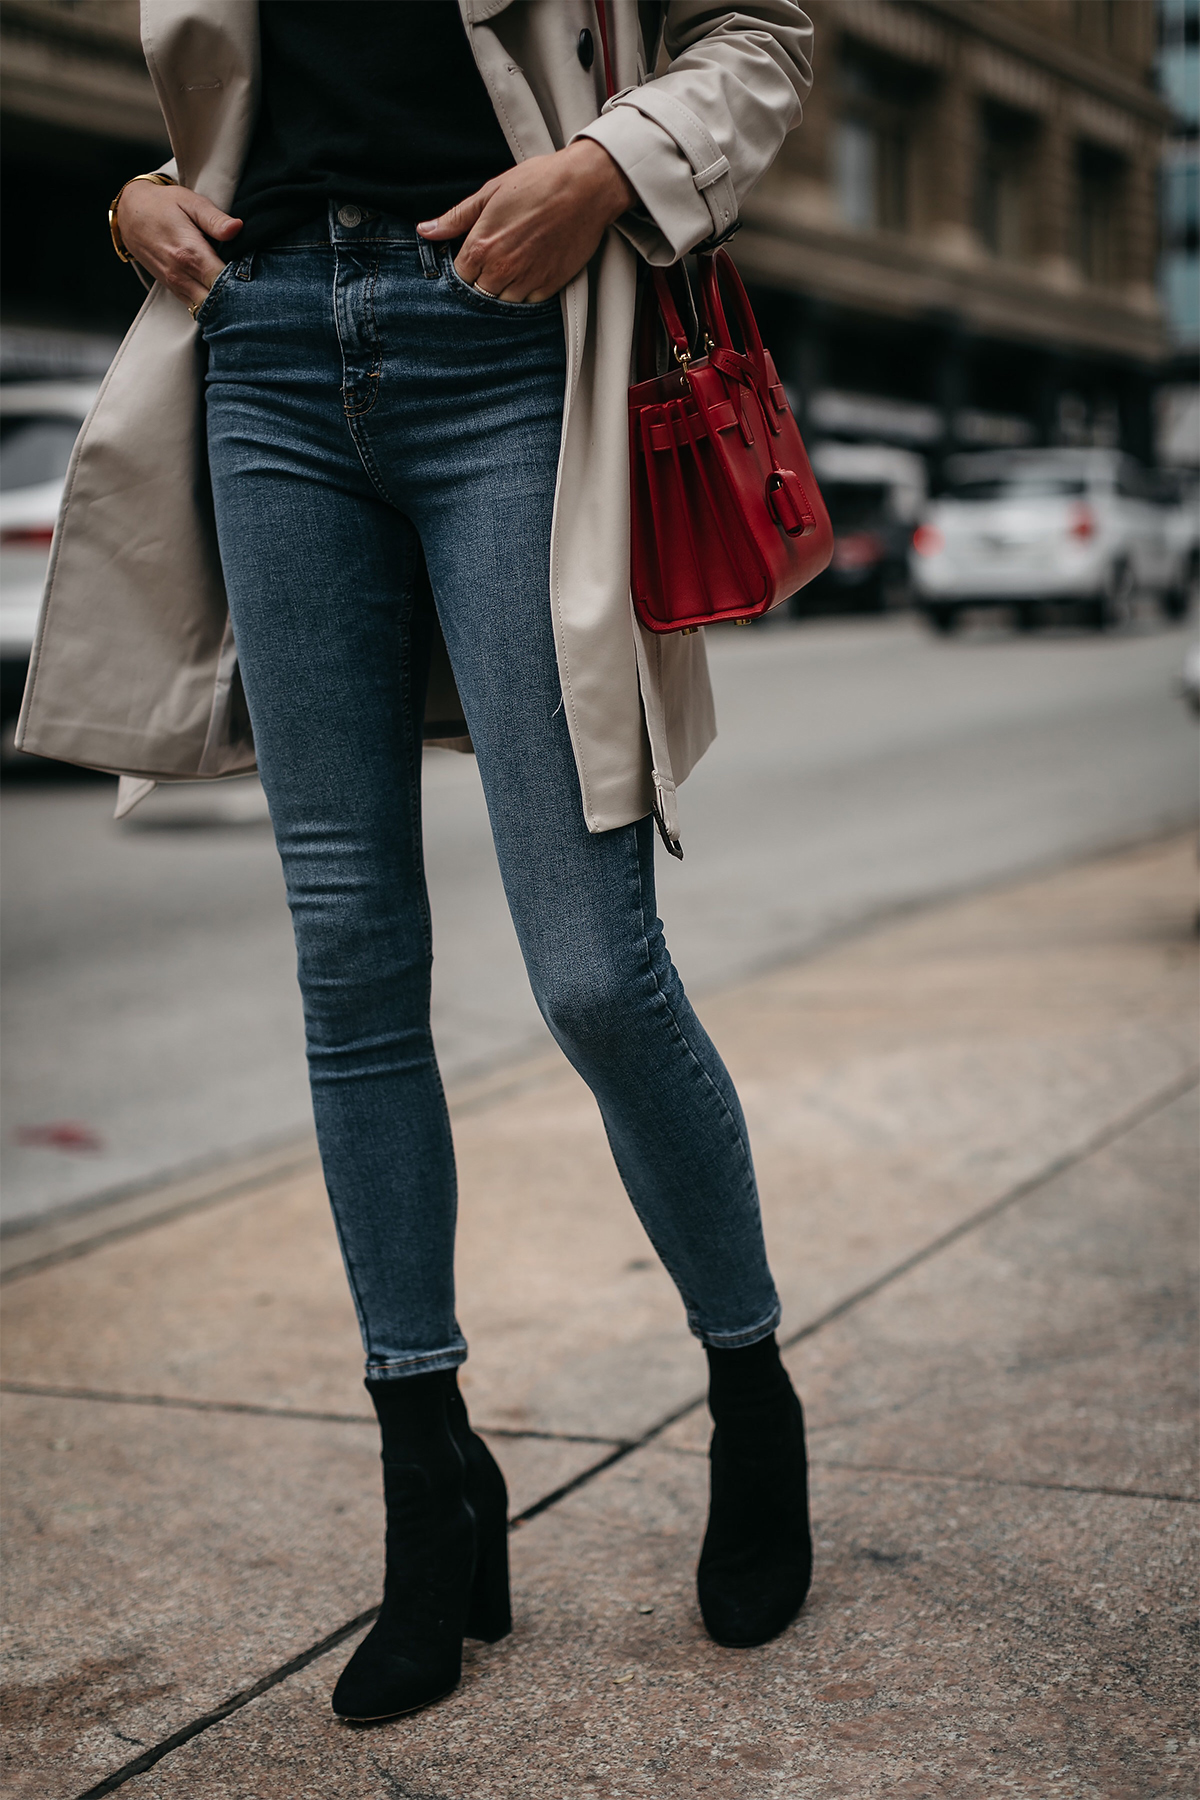 Fashion Jackson Topshop Denim Skinny Jeans Club Monaco Black Ankle Booties Saint Laurent Red Sac De Jour Handbag